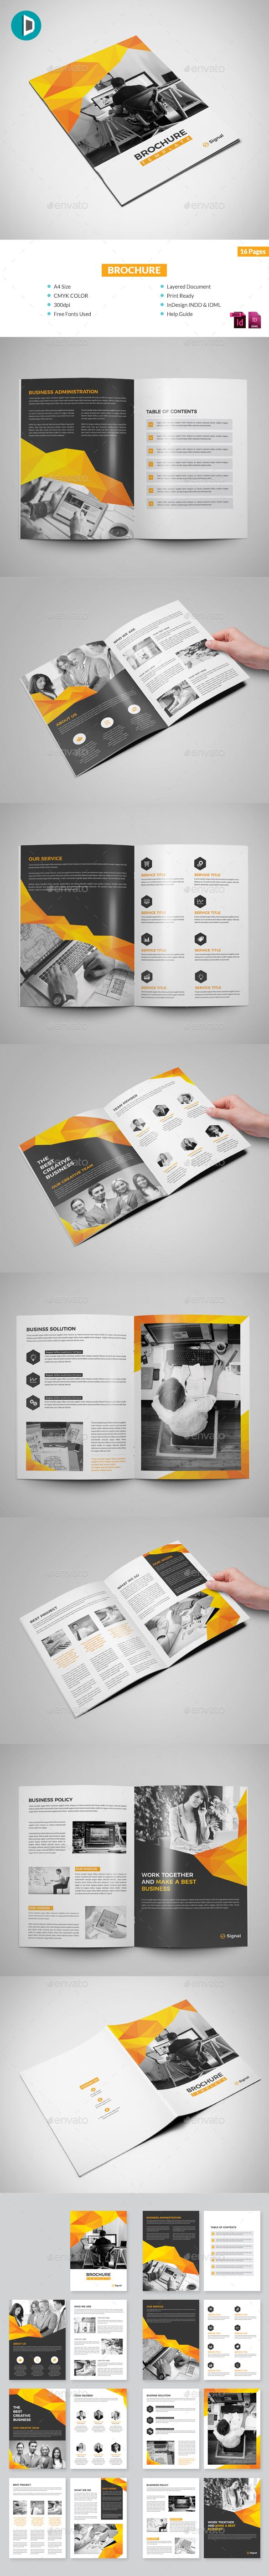 Brochure — InDesign INDD #template #book • Available here → https://graphicriver.net/item/brochure/19992435?ref=pxcr